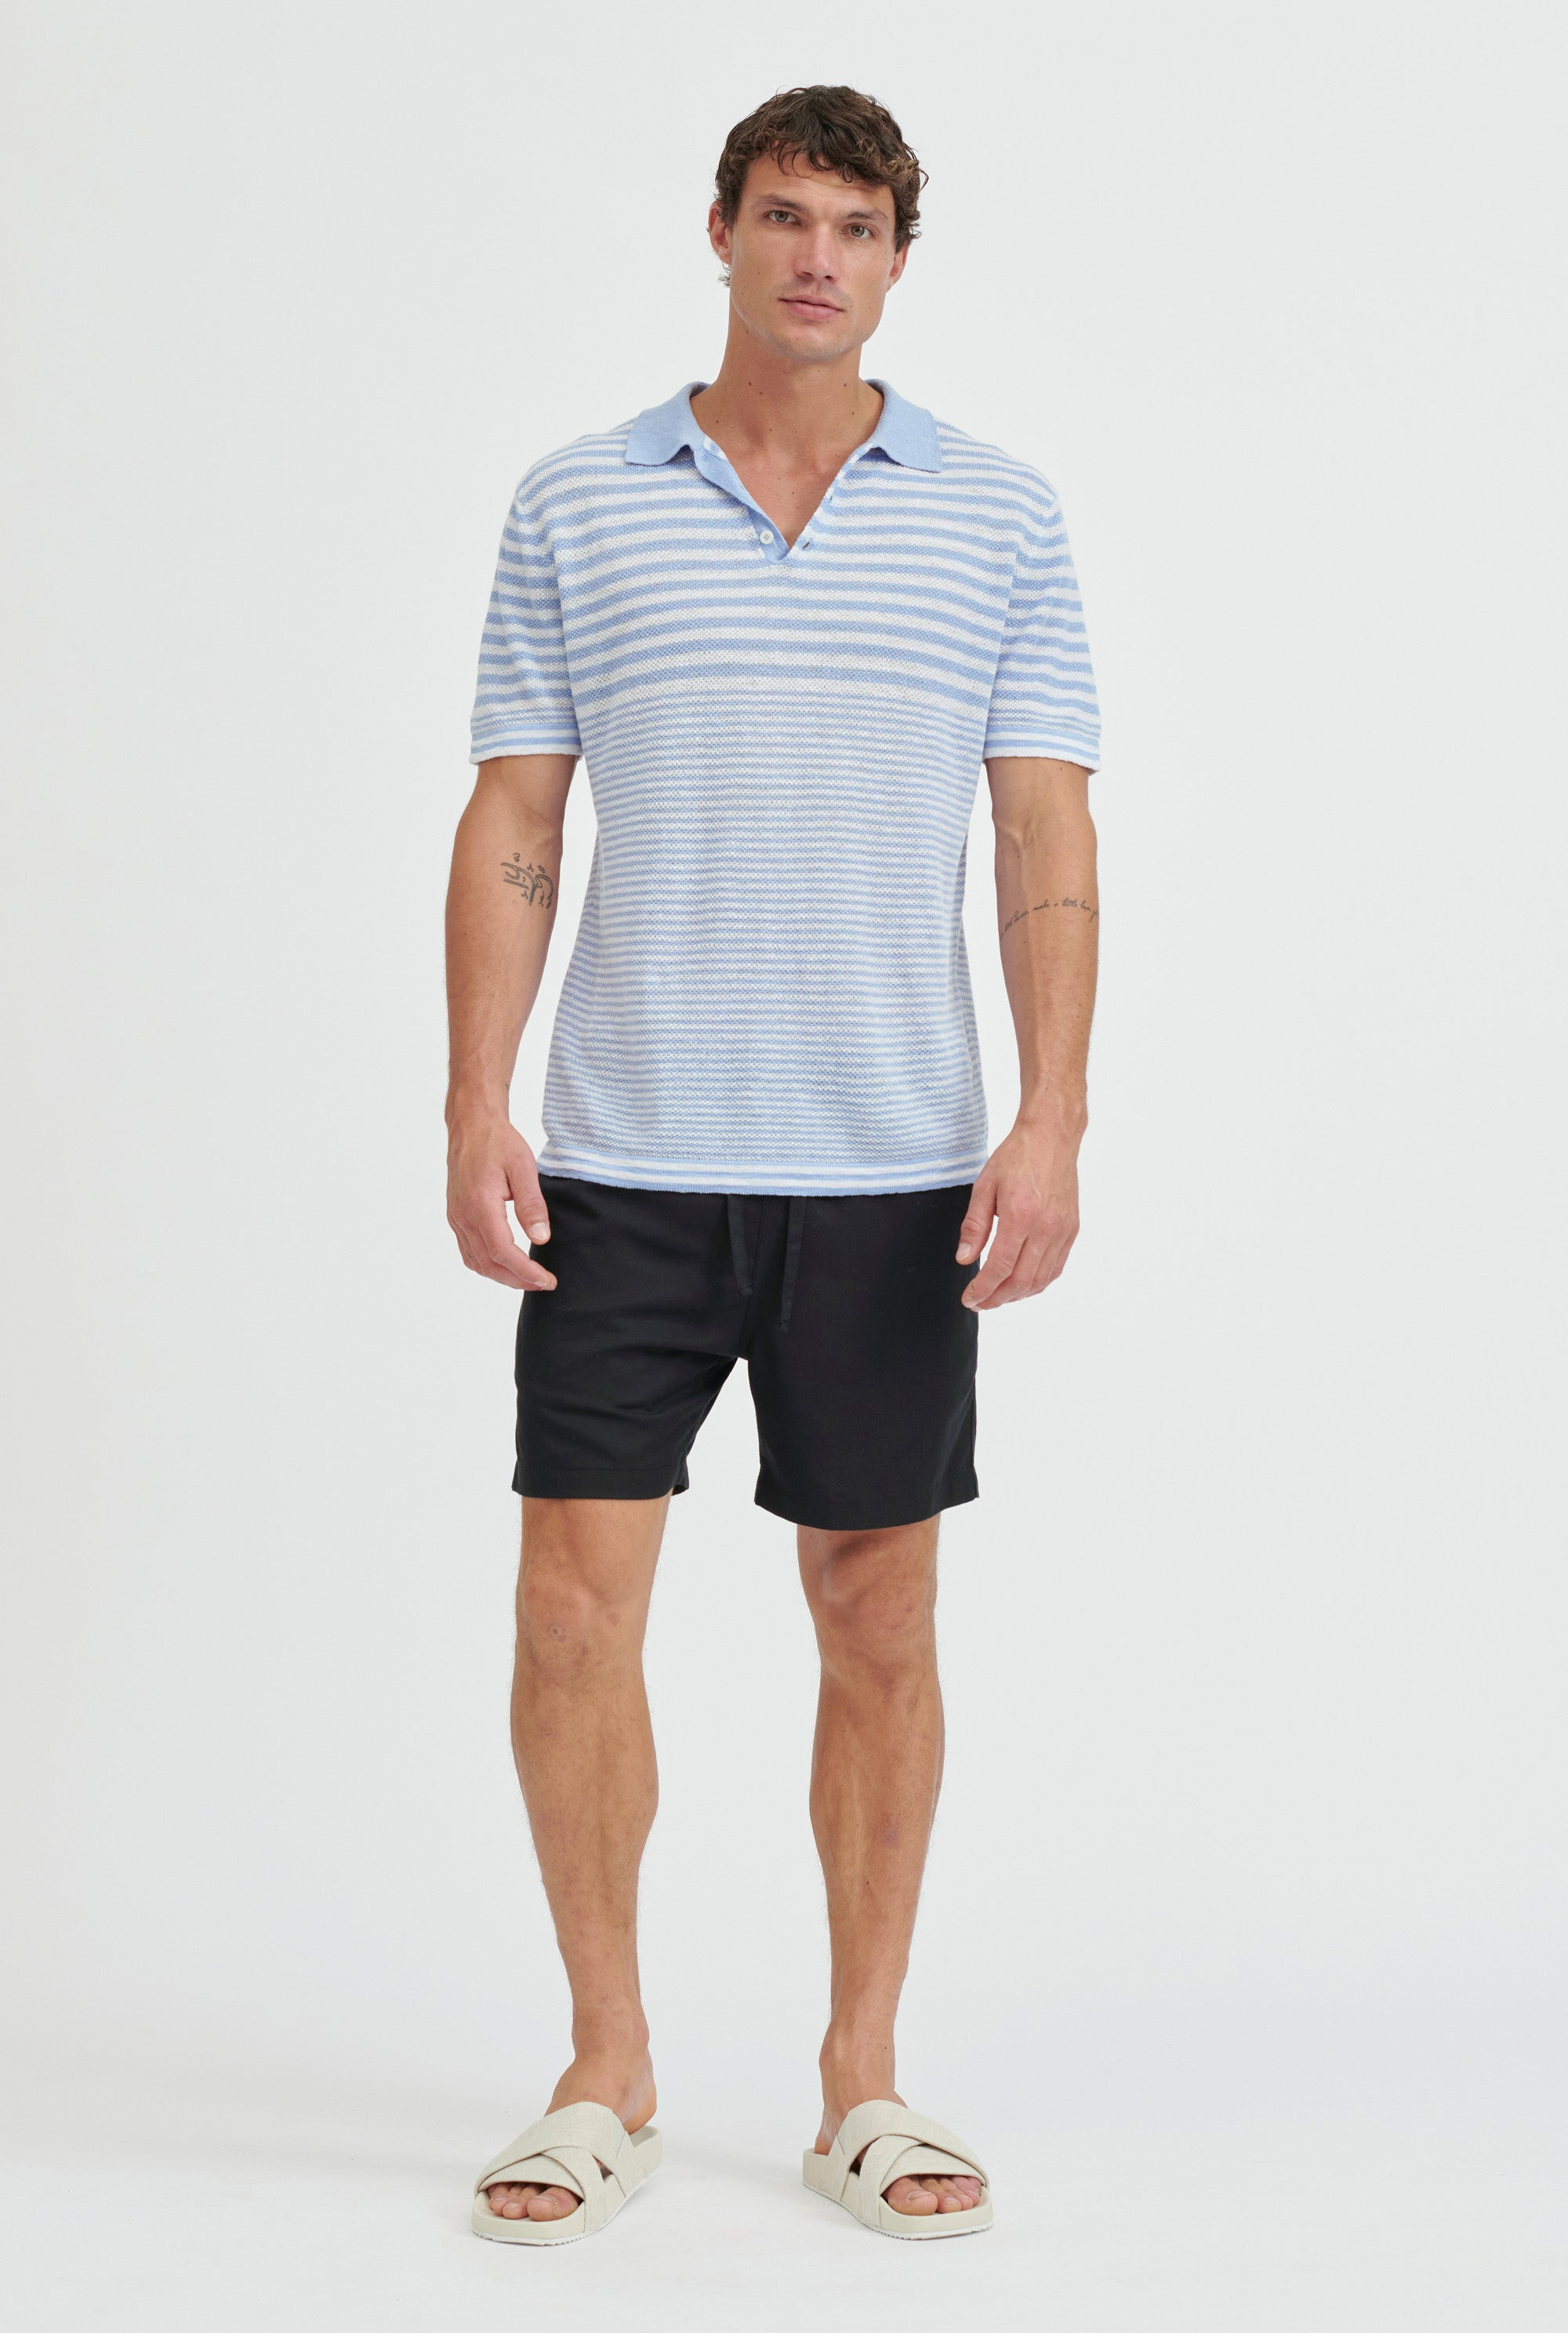 Knitted Pique Polo - Light Blue/White Stripe